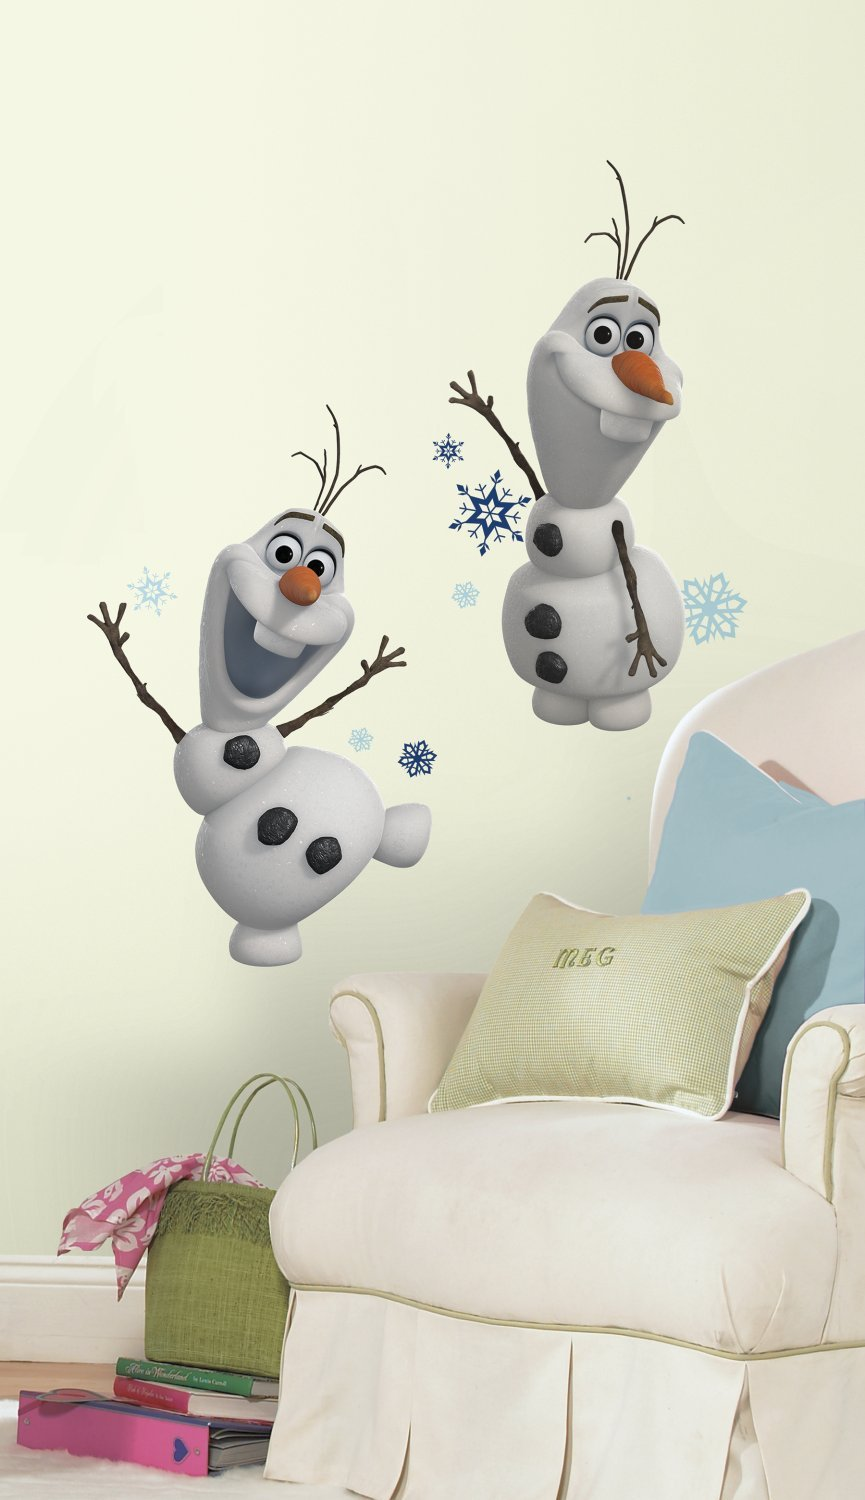 olaf-the-snow-man-wall-decals.jpg